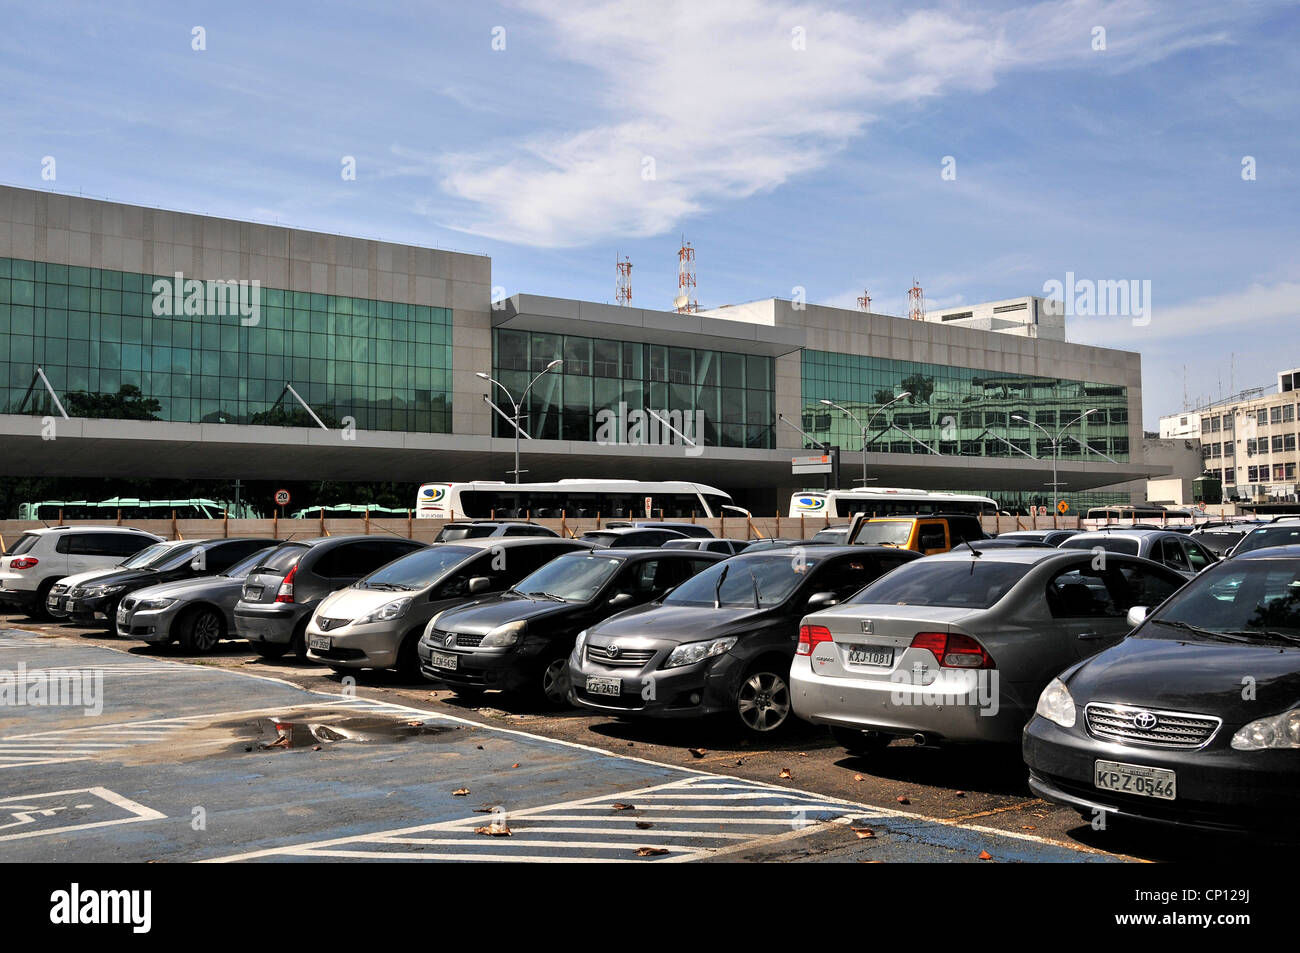 Car Parking At An Airport Stock Photos Car Parking At An Airport